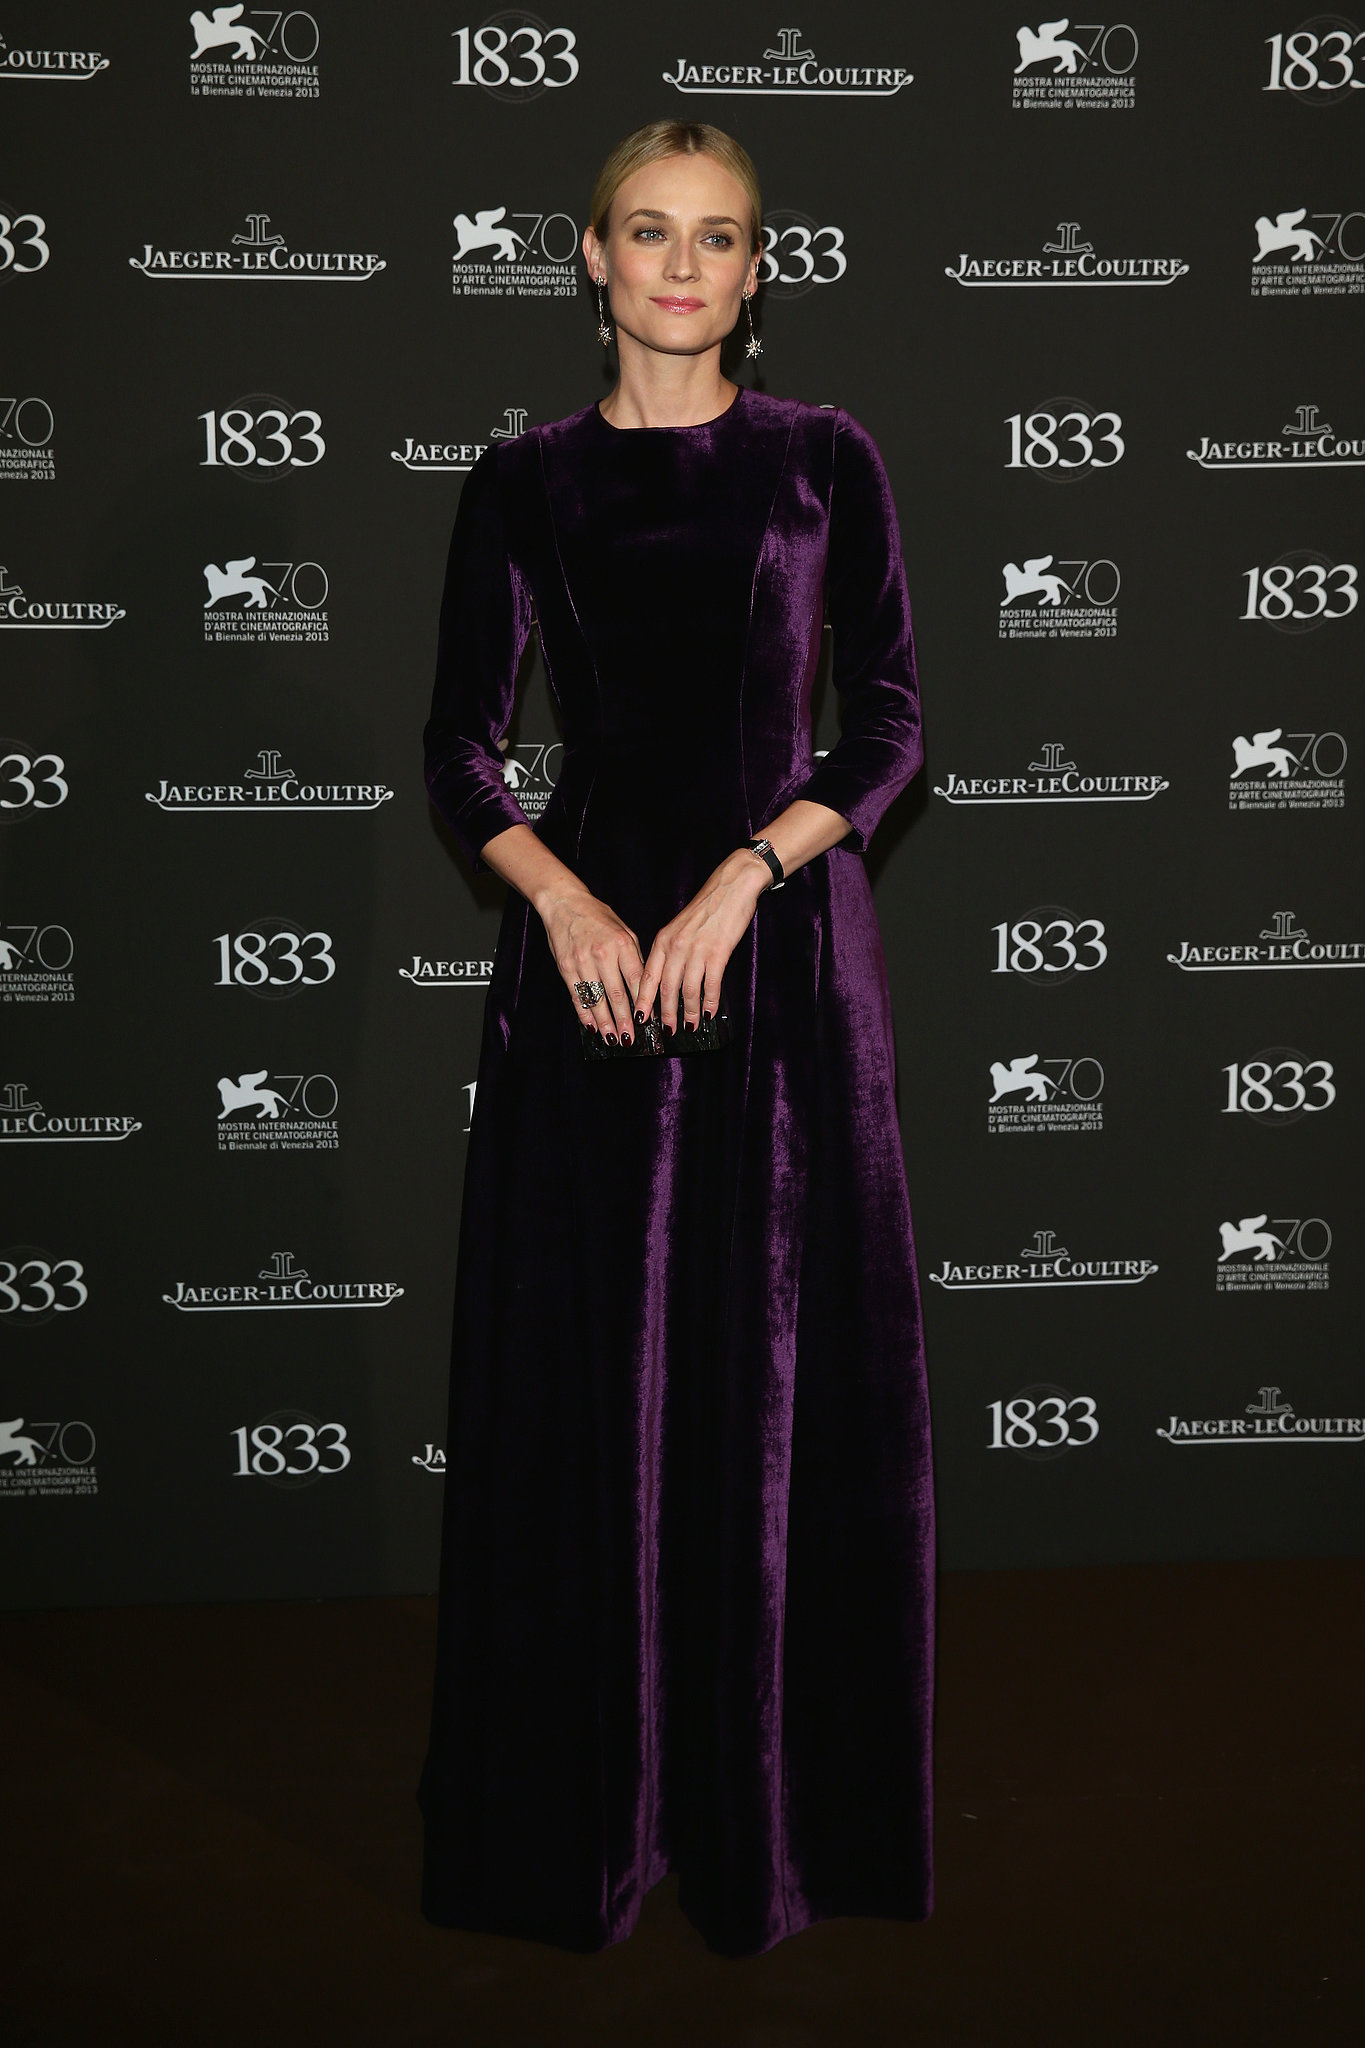 Diane-Kruger-wore-purple-velvet-dress-Jaeger-LeCoultre-gala